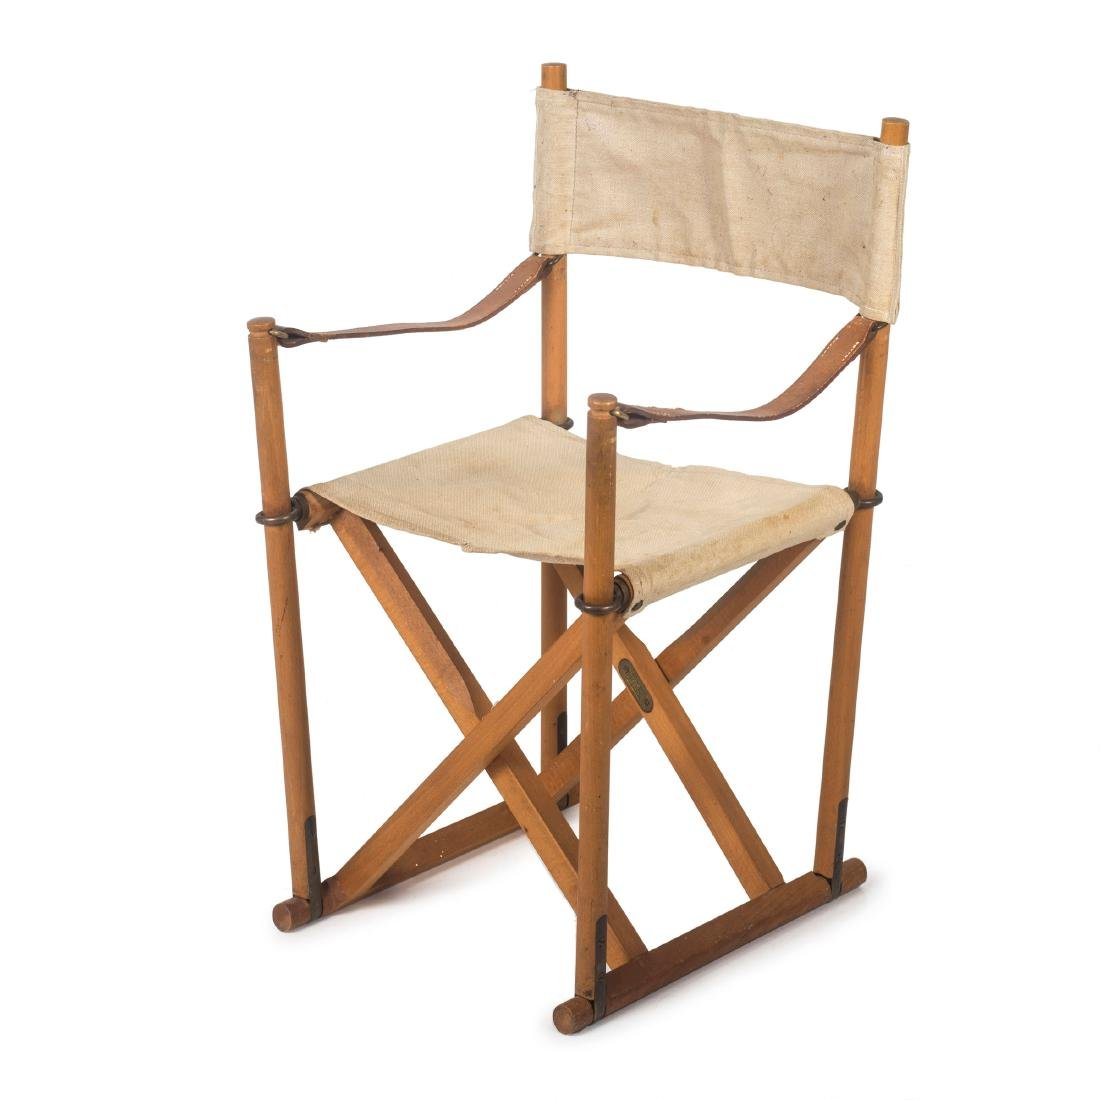 'MK16' child's folding chair, 1932